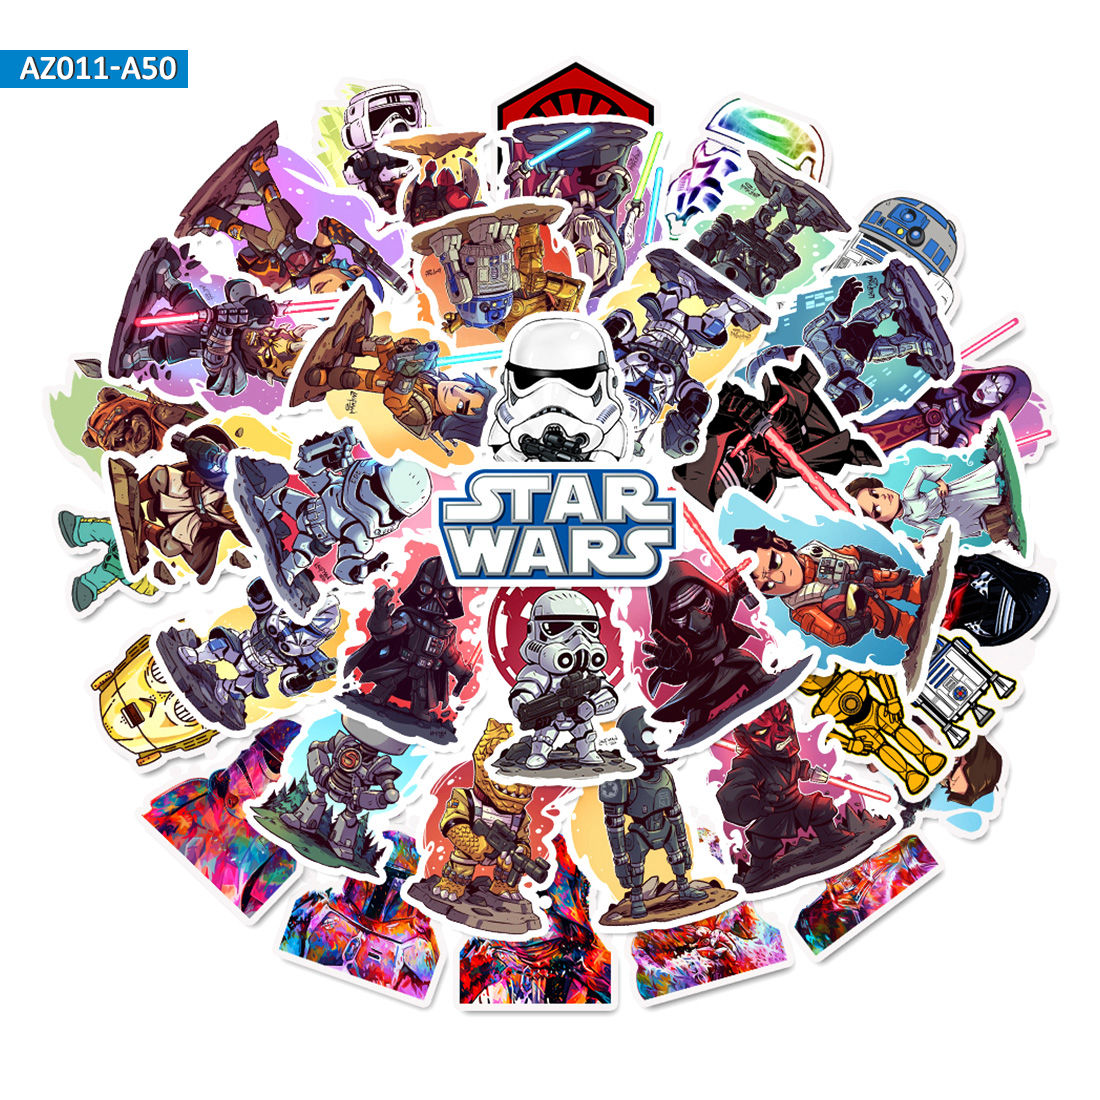 50pcs Star Wars Stickers For Mobile Phone Laptop Luggage Suitcase Guitar Skateboard Bicycle Car PVC Waterproof Decal Stickers